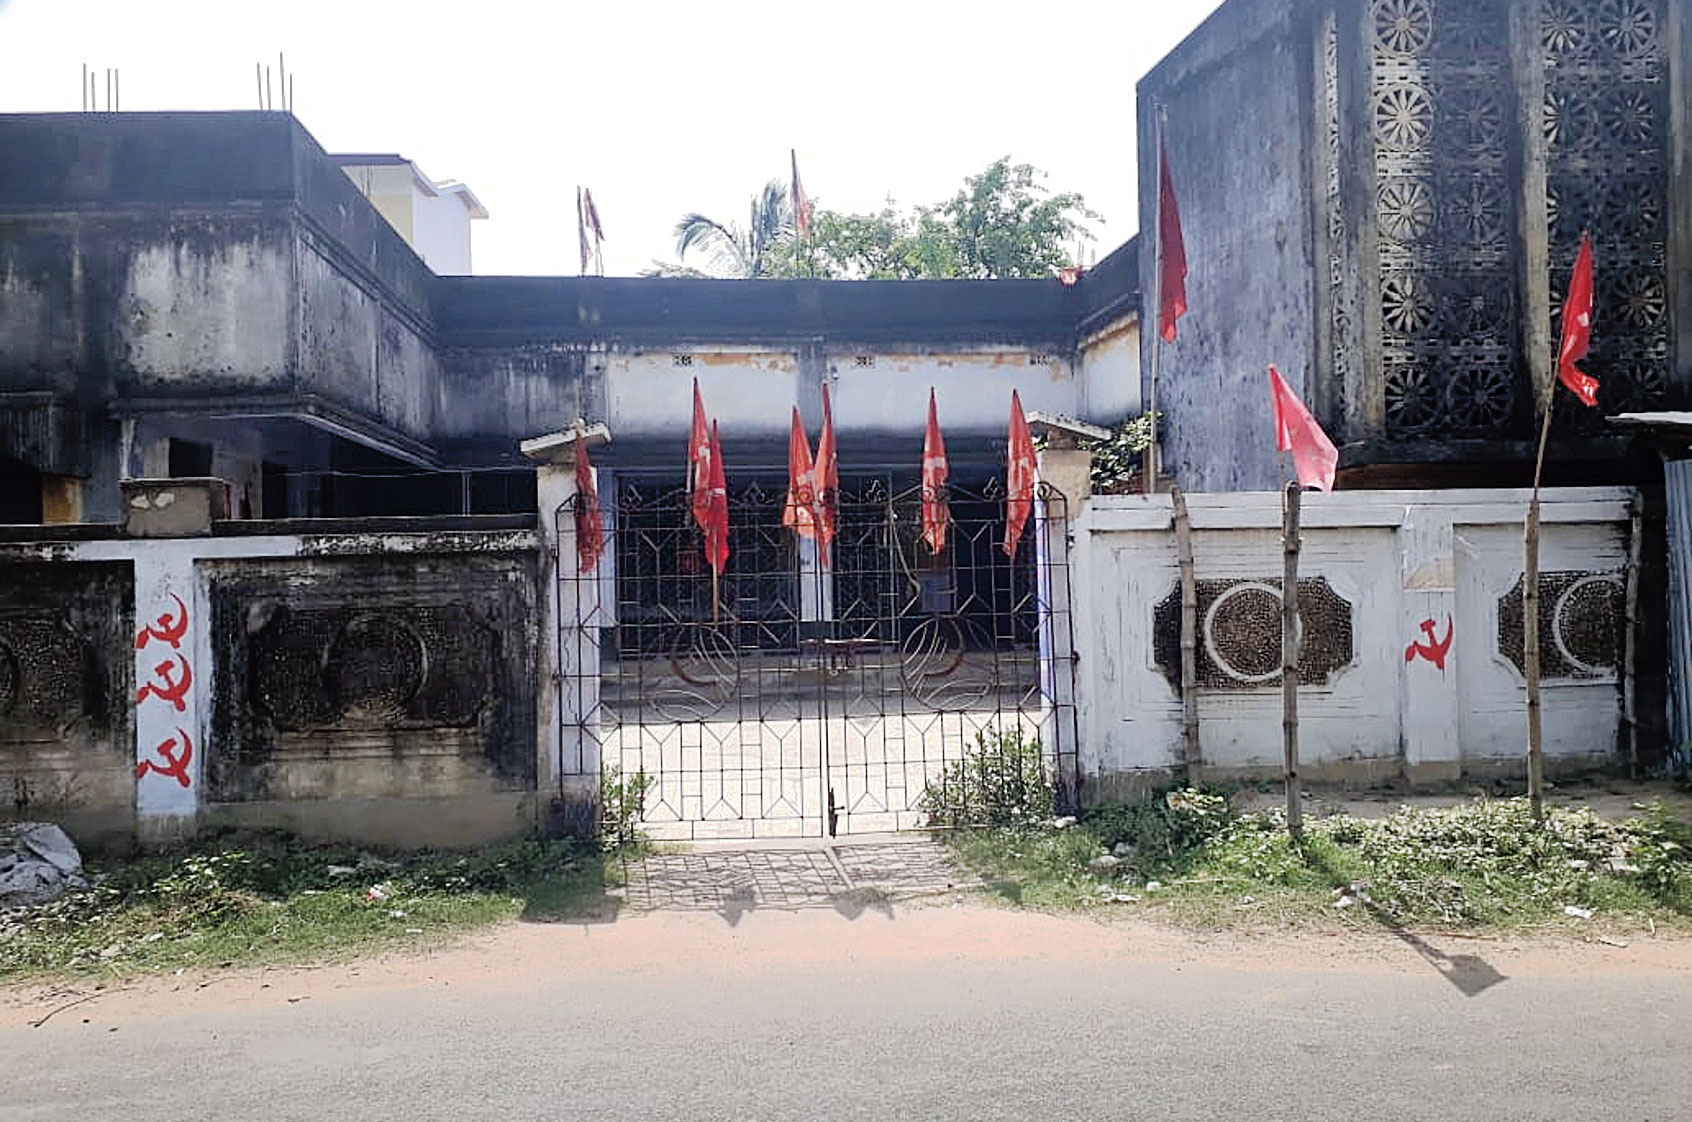 BJP occupies space vacated by communists in Midnapore